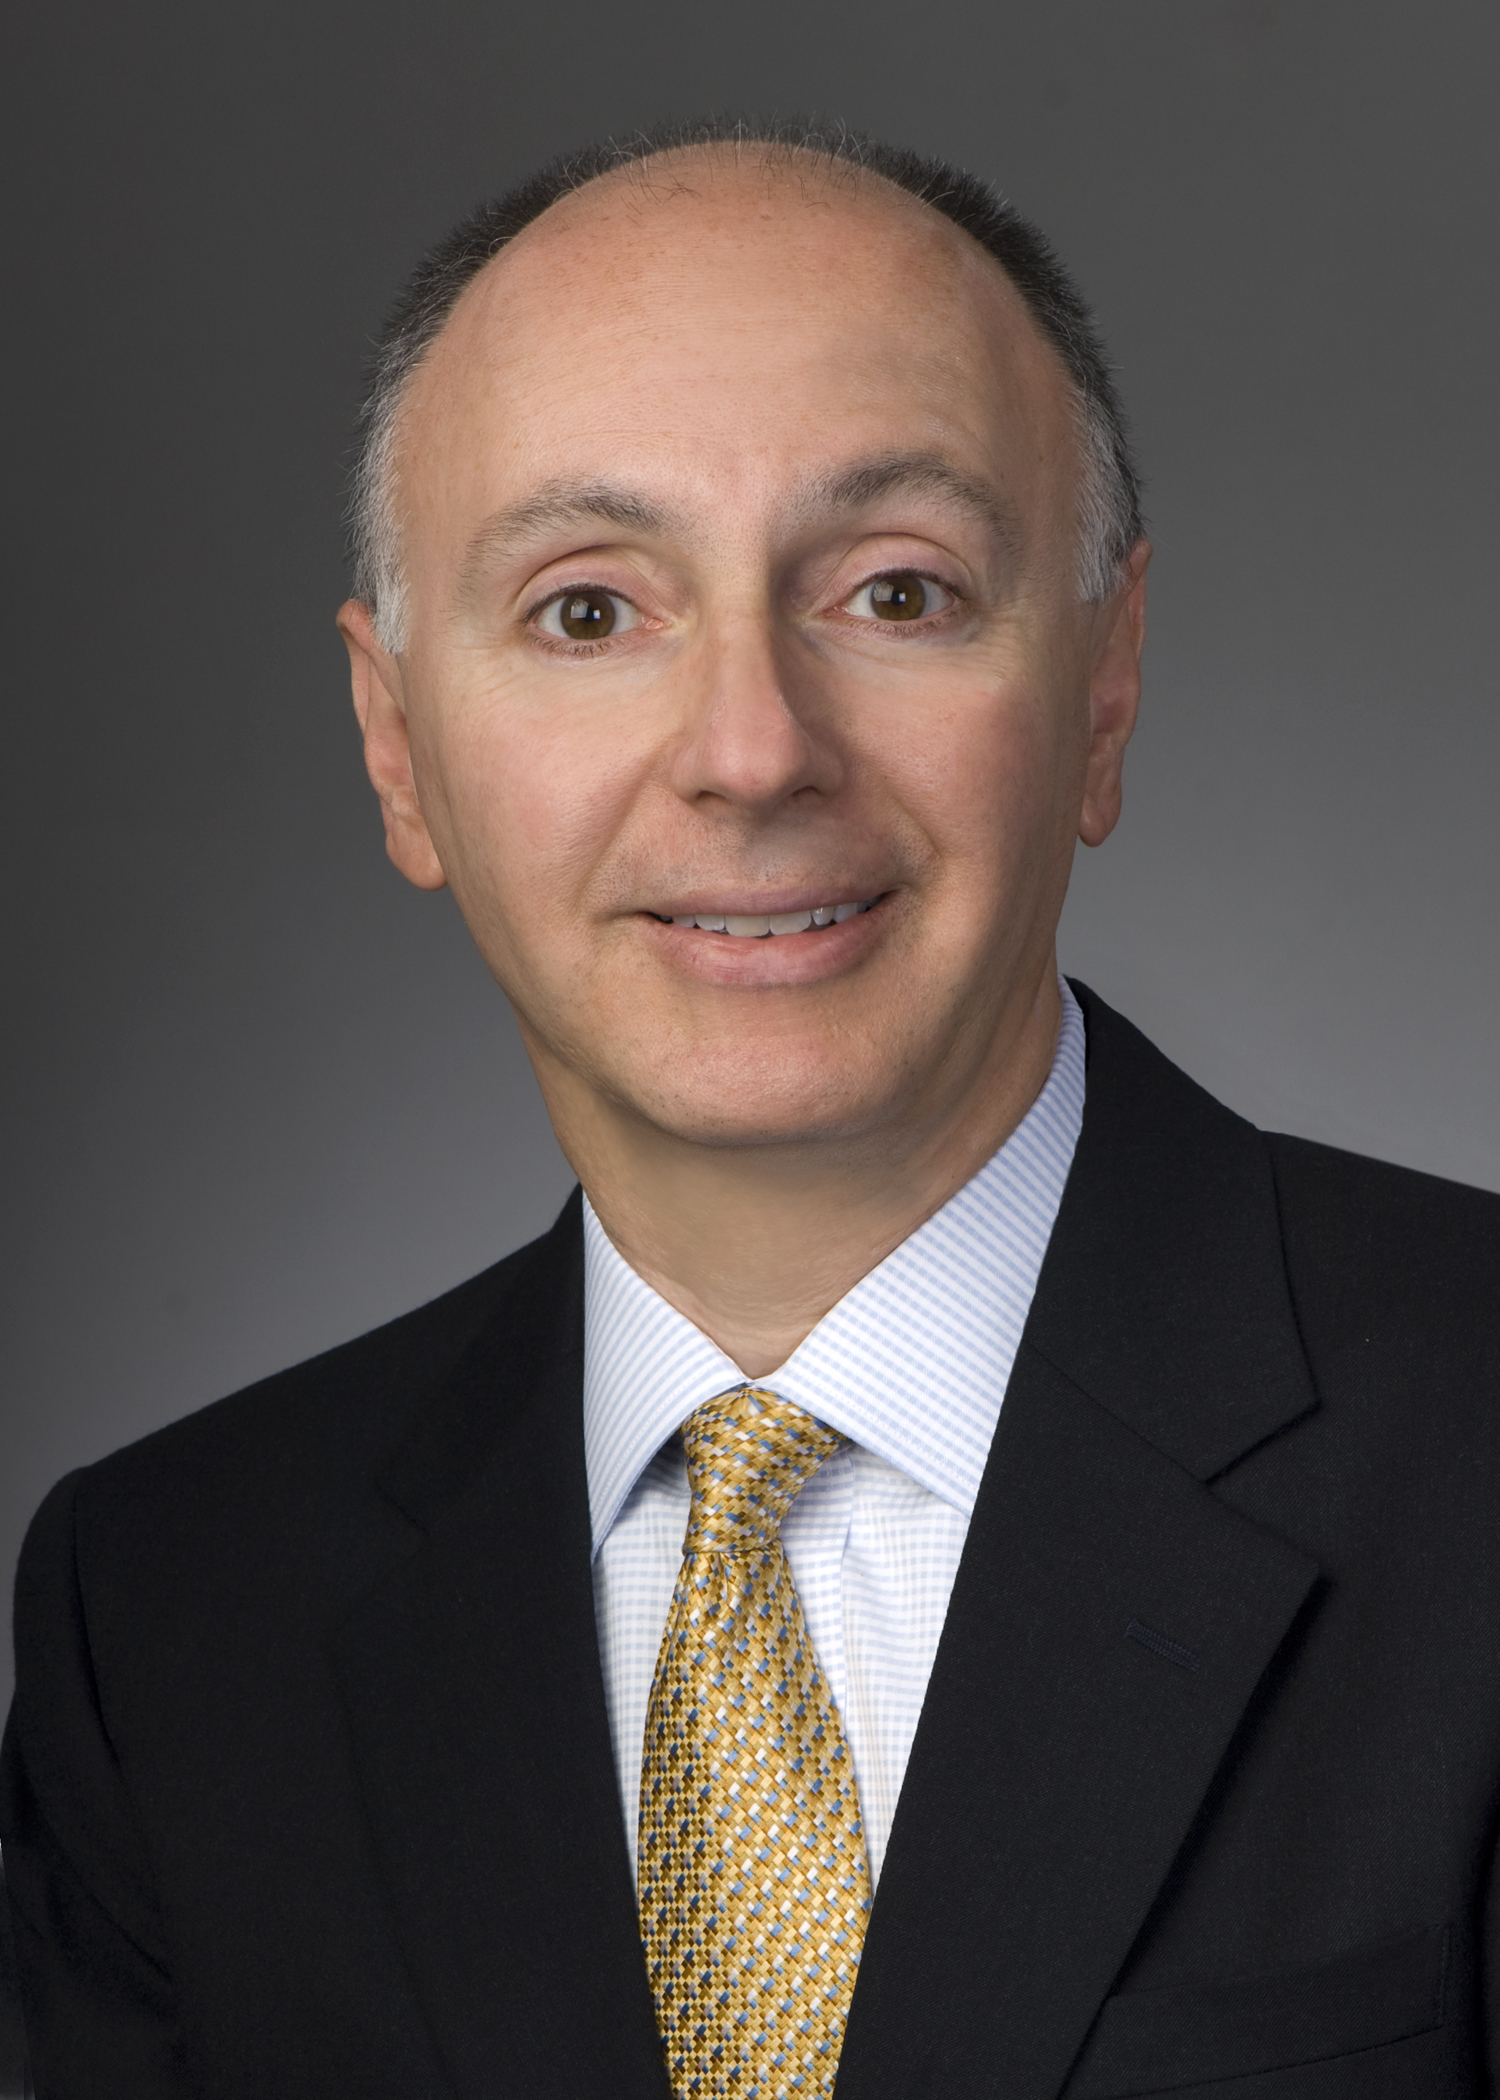 James Guliano sepsis advisory board member